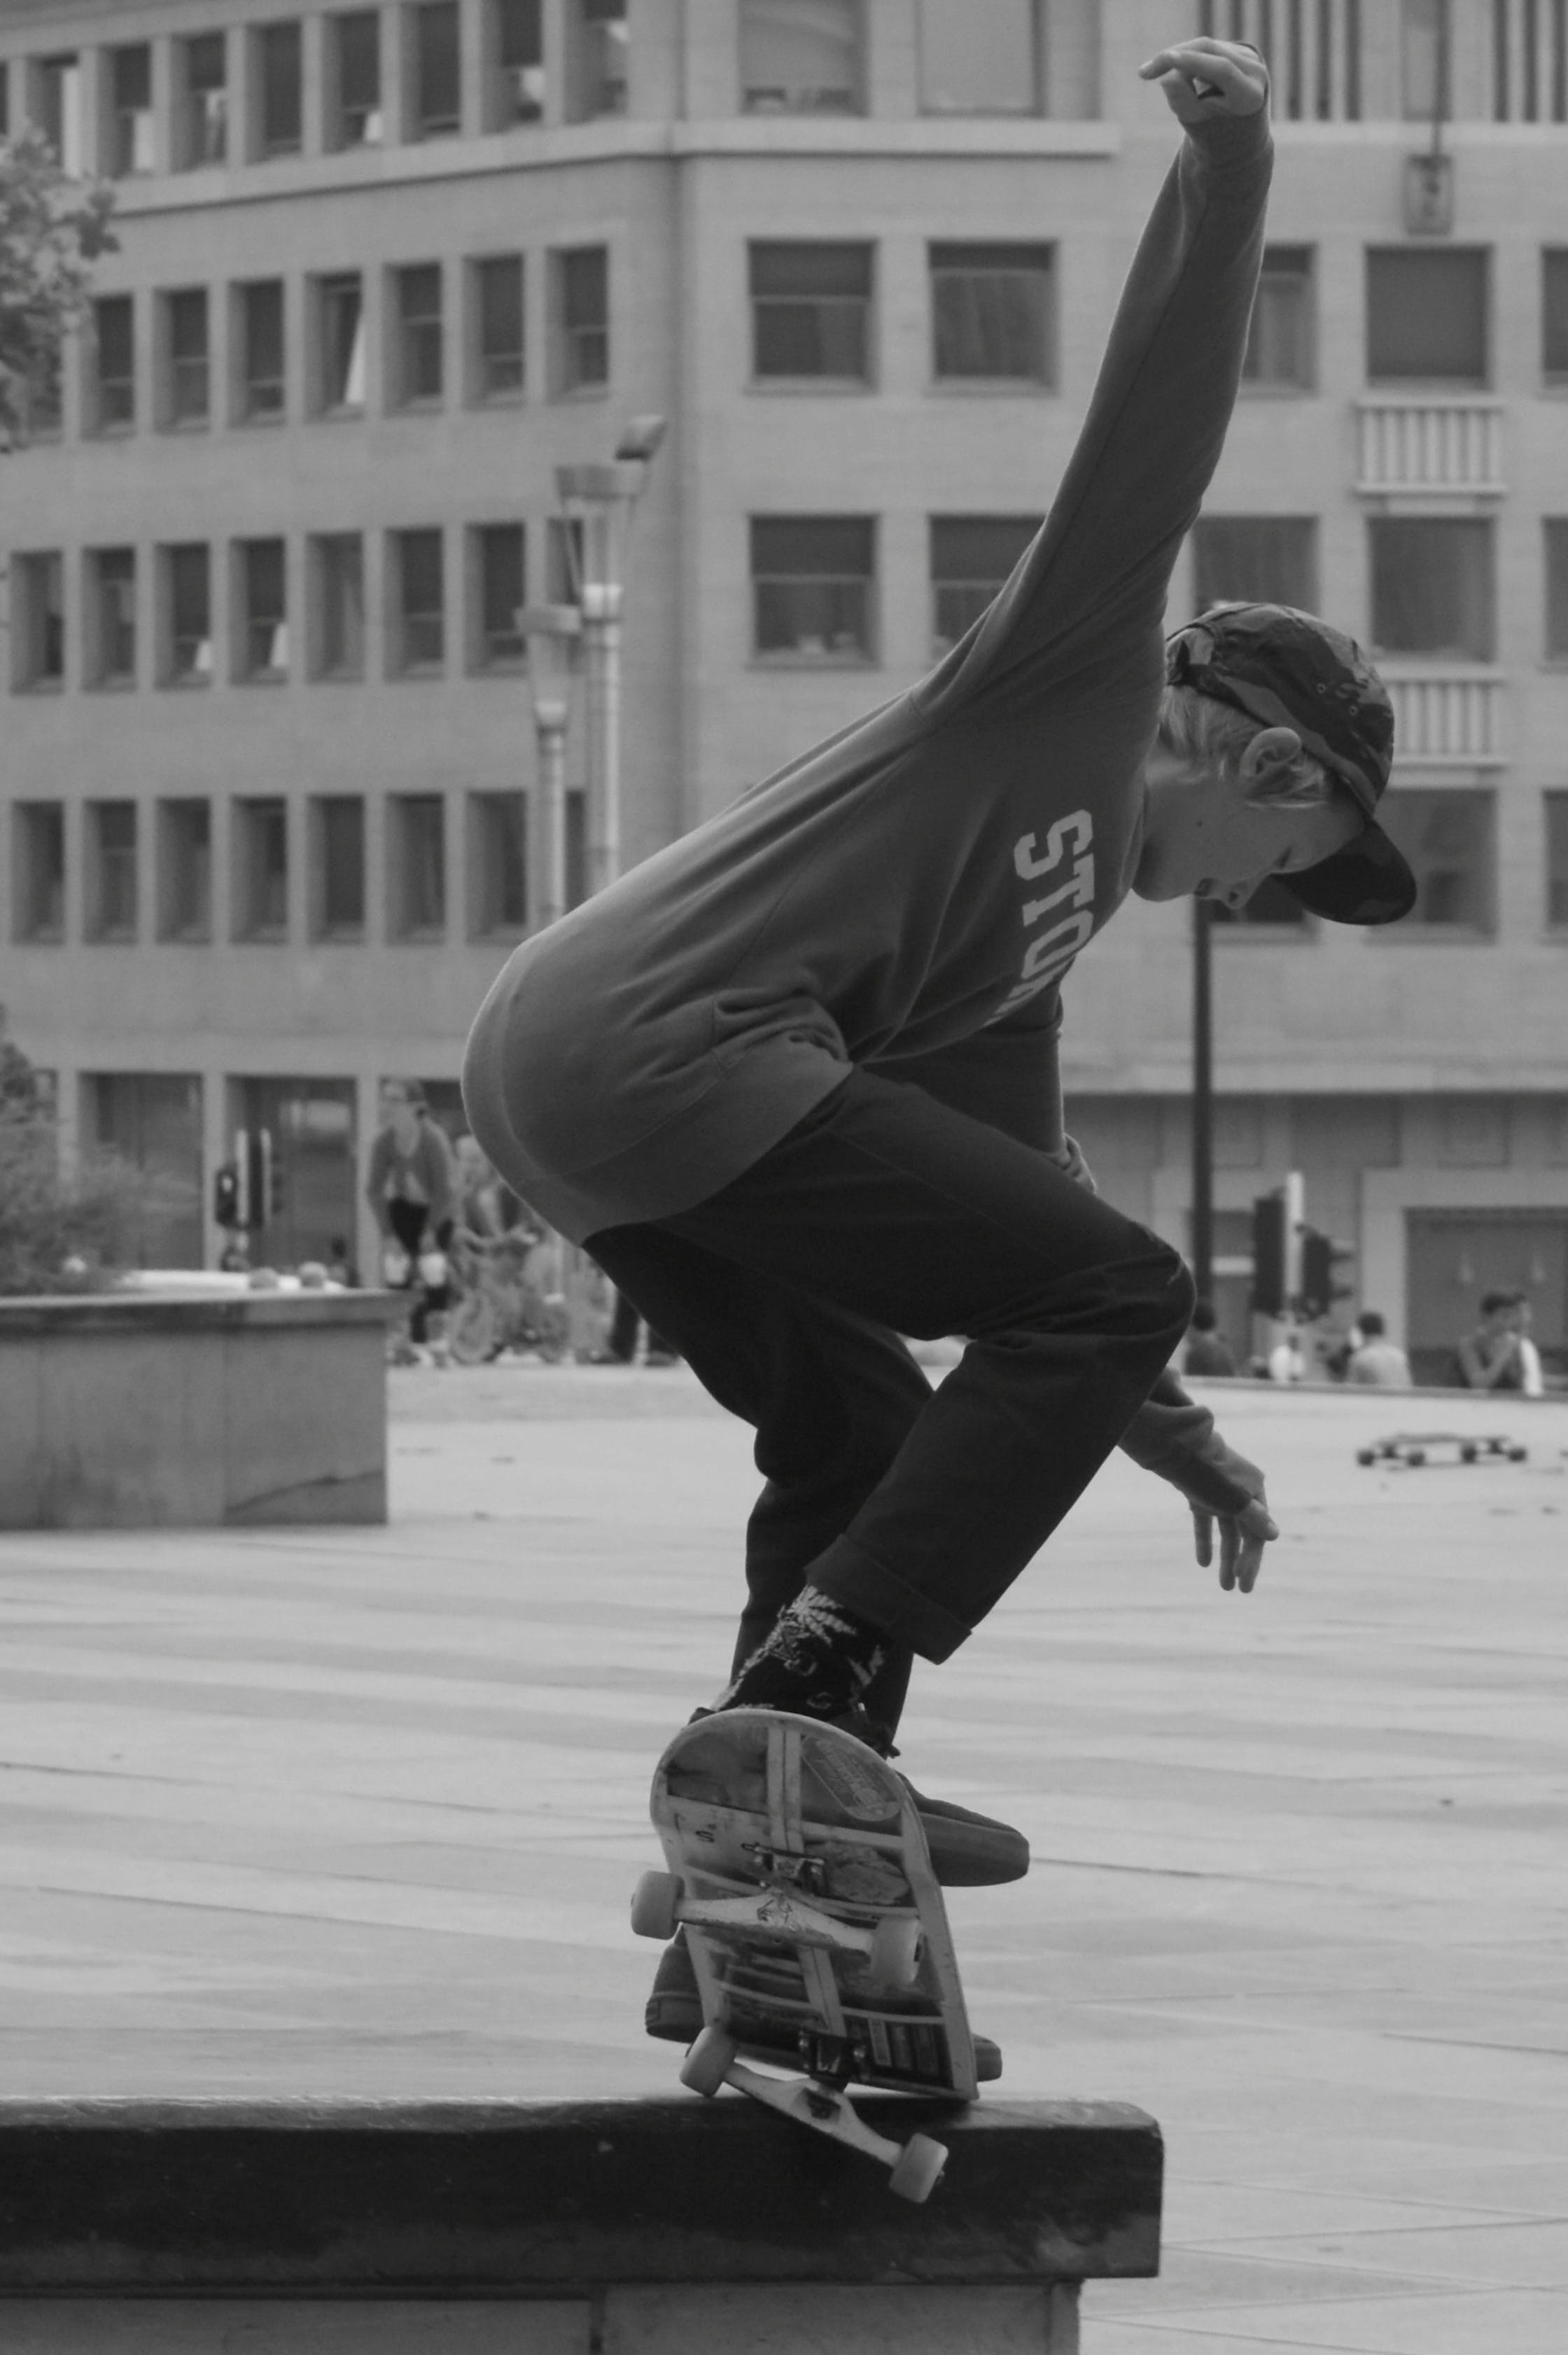 Boy Skateboarding Grayscale Photography